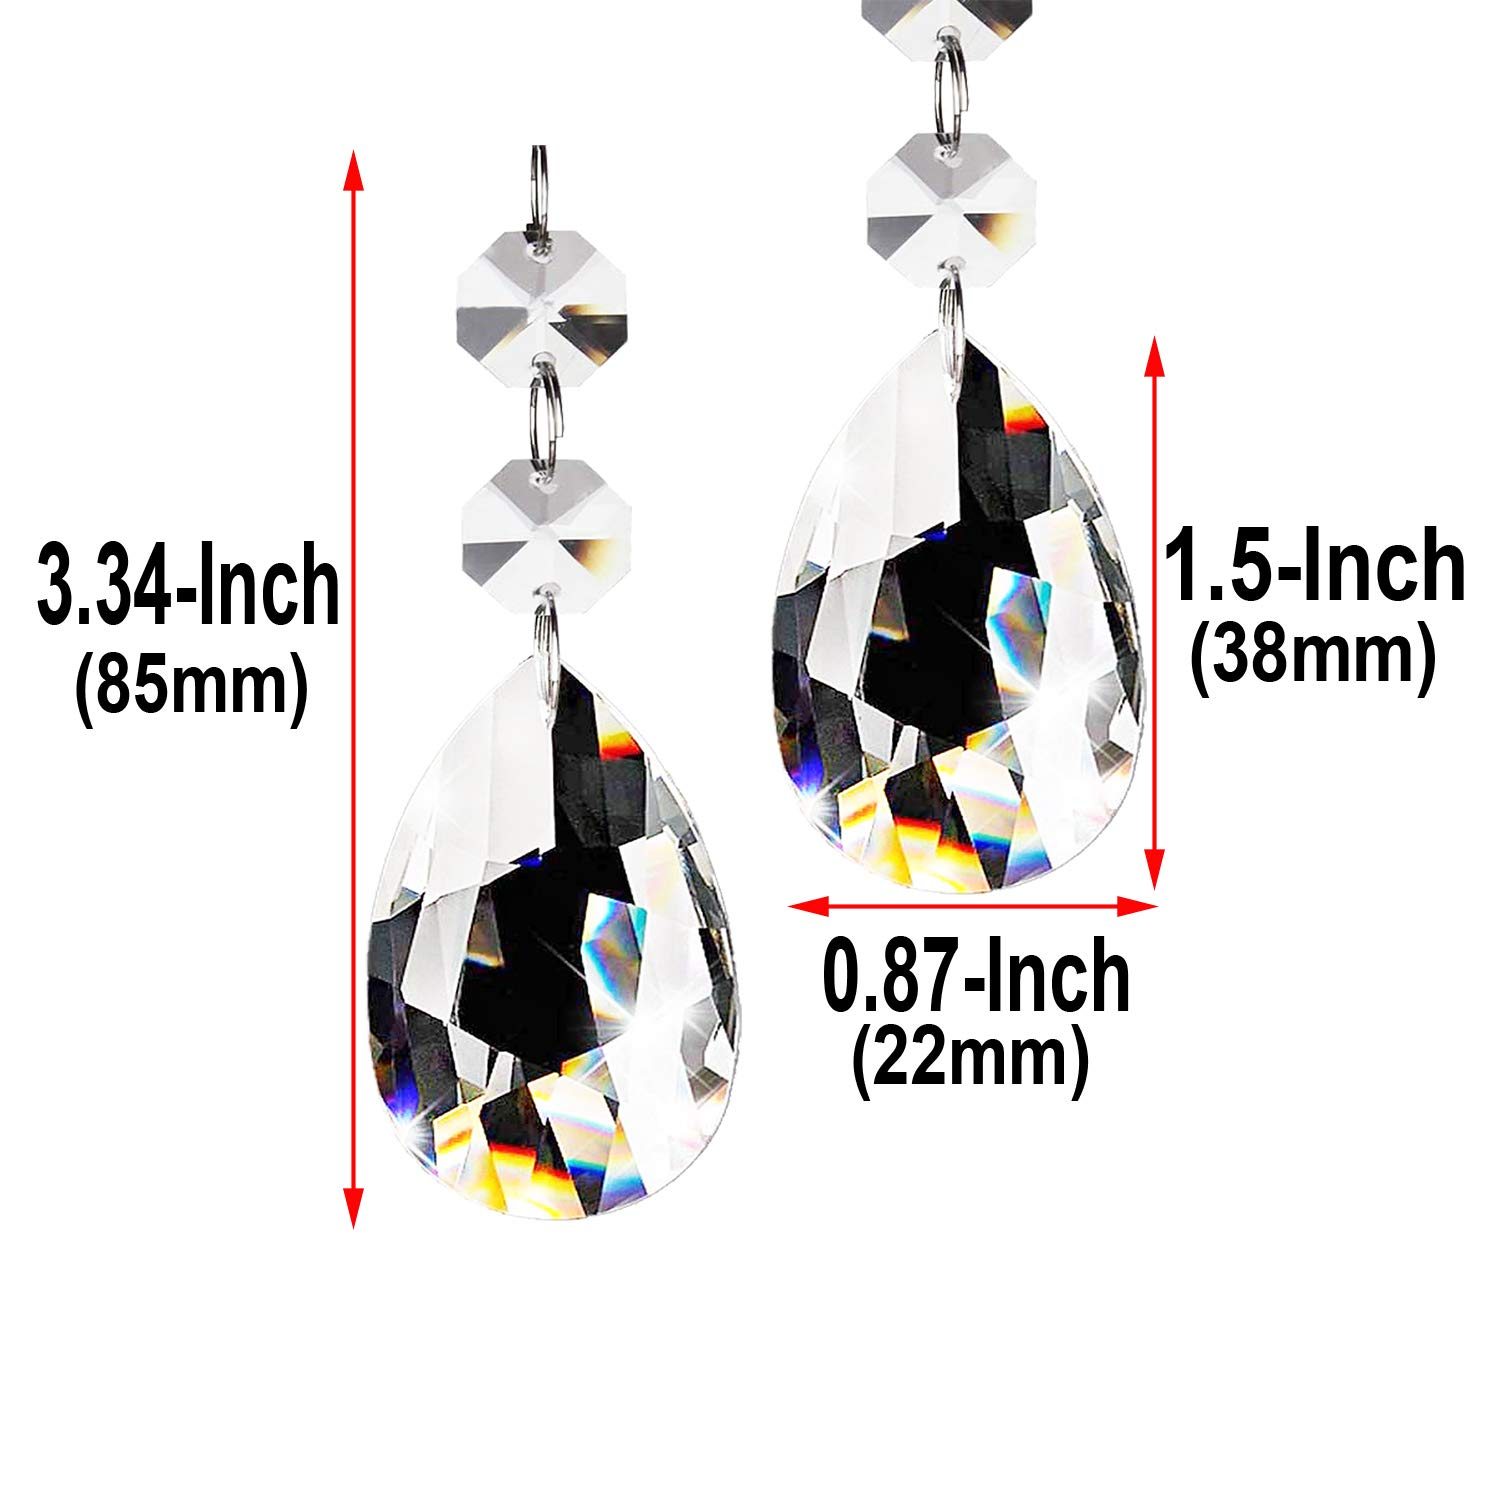 30pcs Chandelier Crystals Beads Clear Glass Teardrop Pendants Crystal Chandeliers Parts Beads for Chandeliers